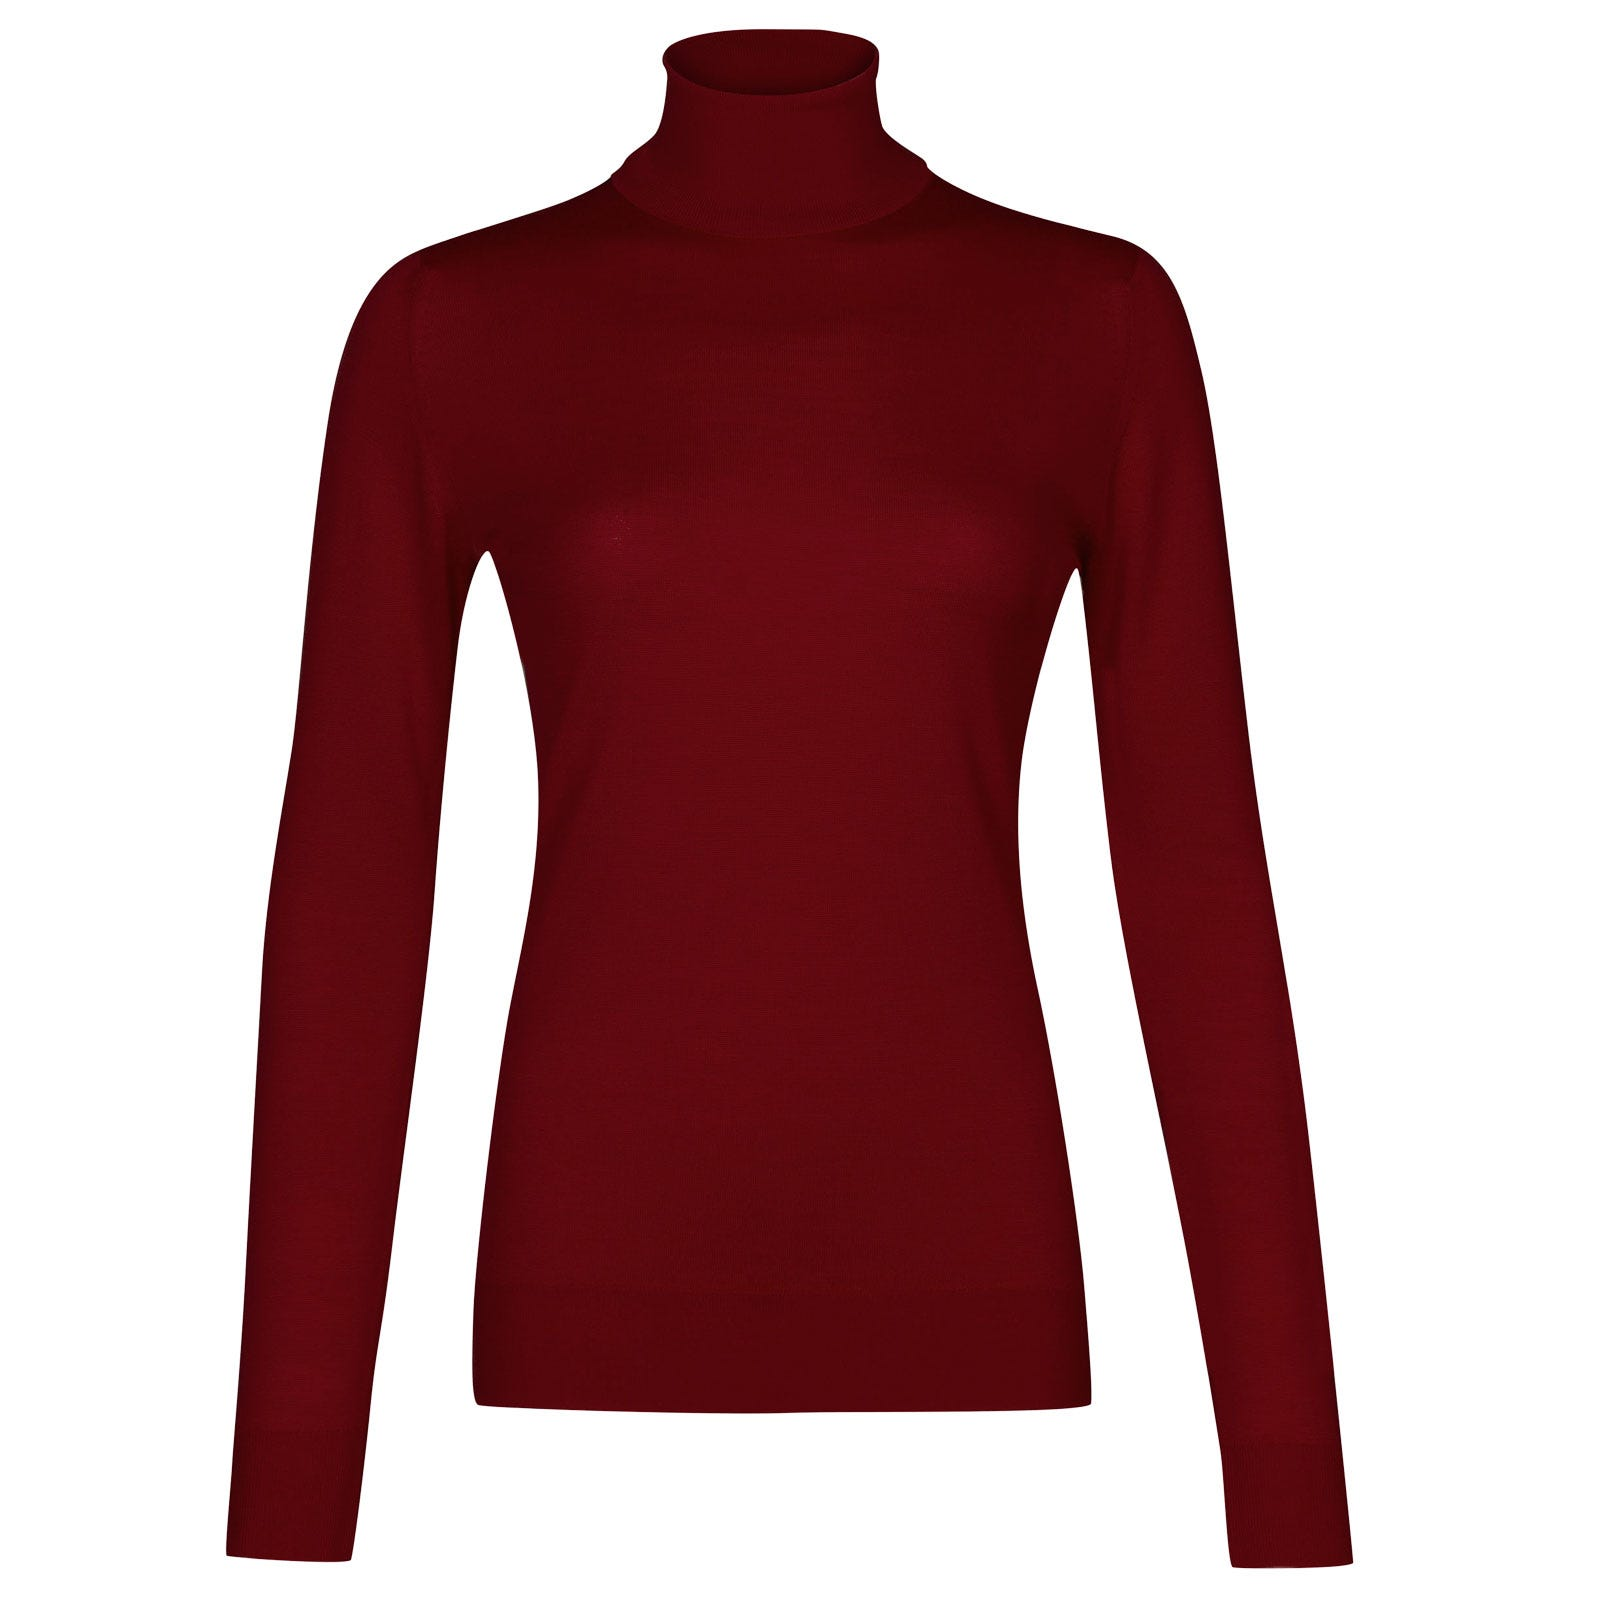 John Smedley Catkin Merino Wool Sweater in Crimson Forest-XL